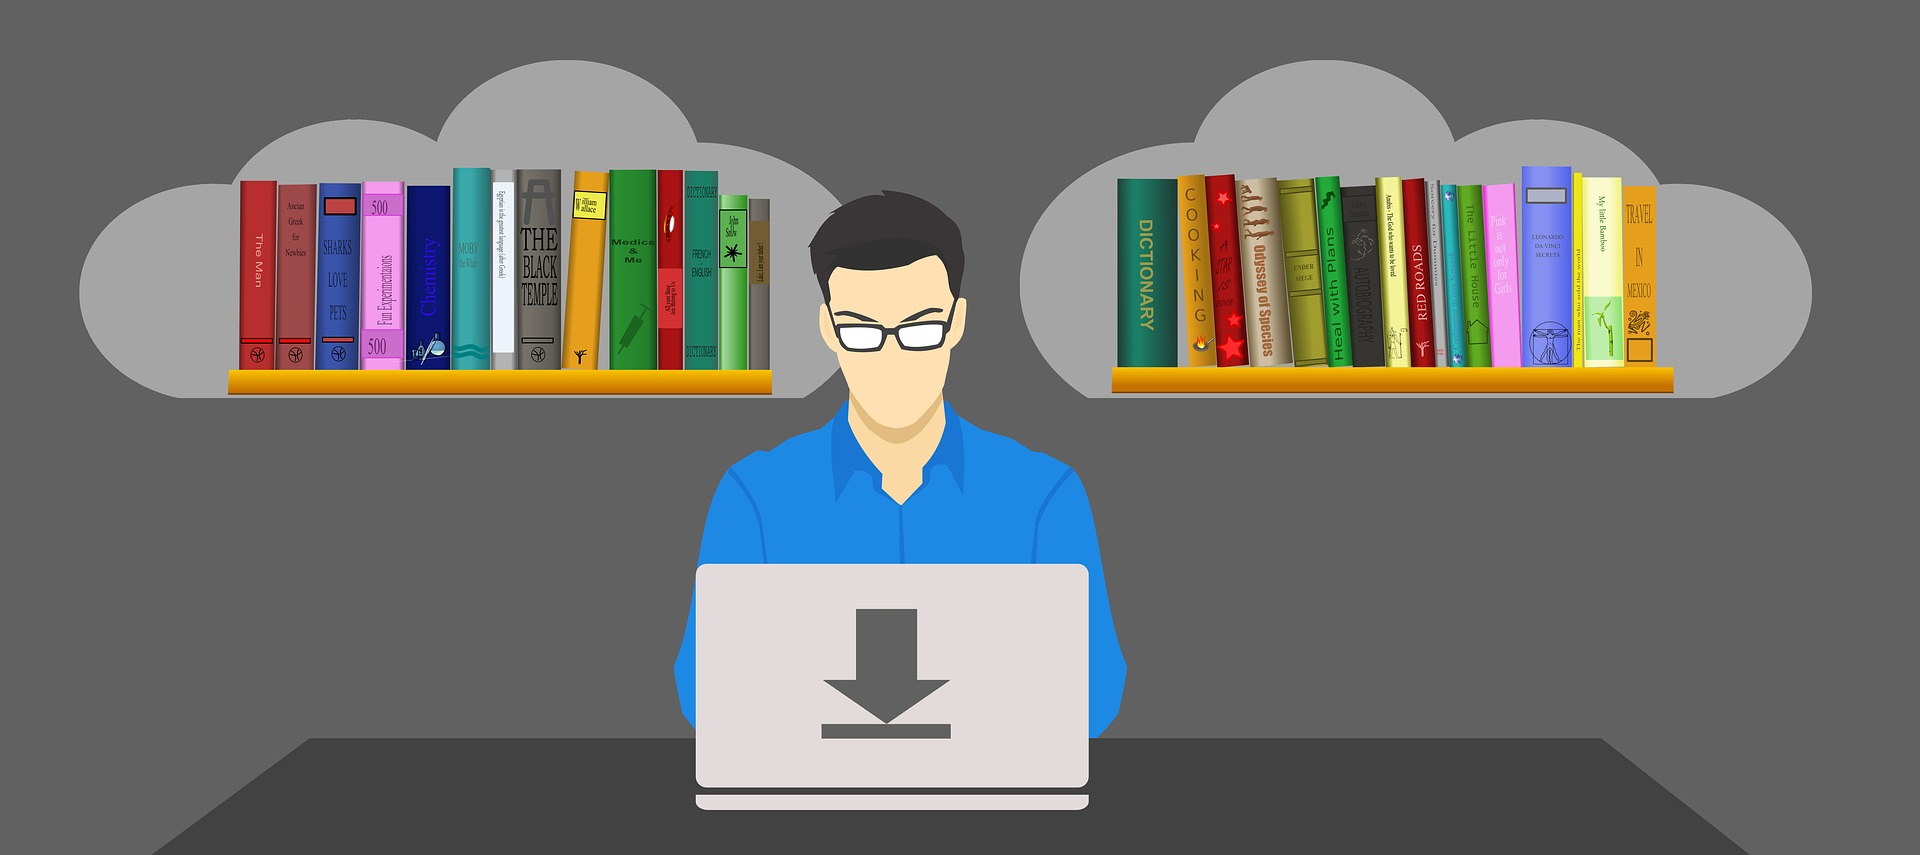 Stock illustration of a person at a computer, with images of books in thought bubbles.